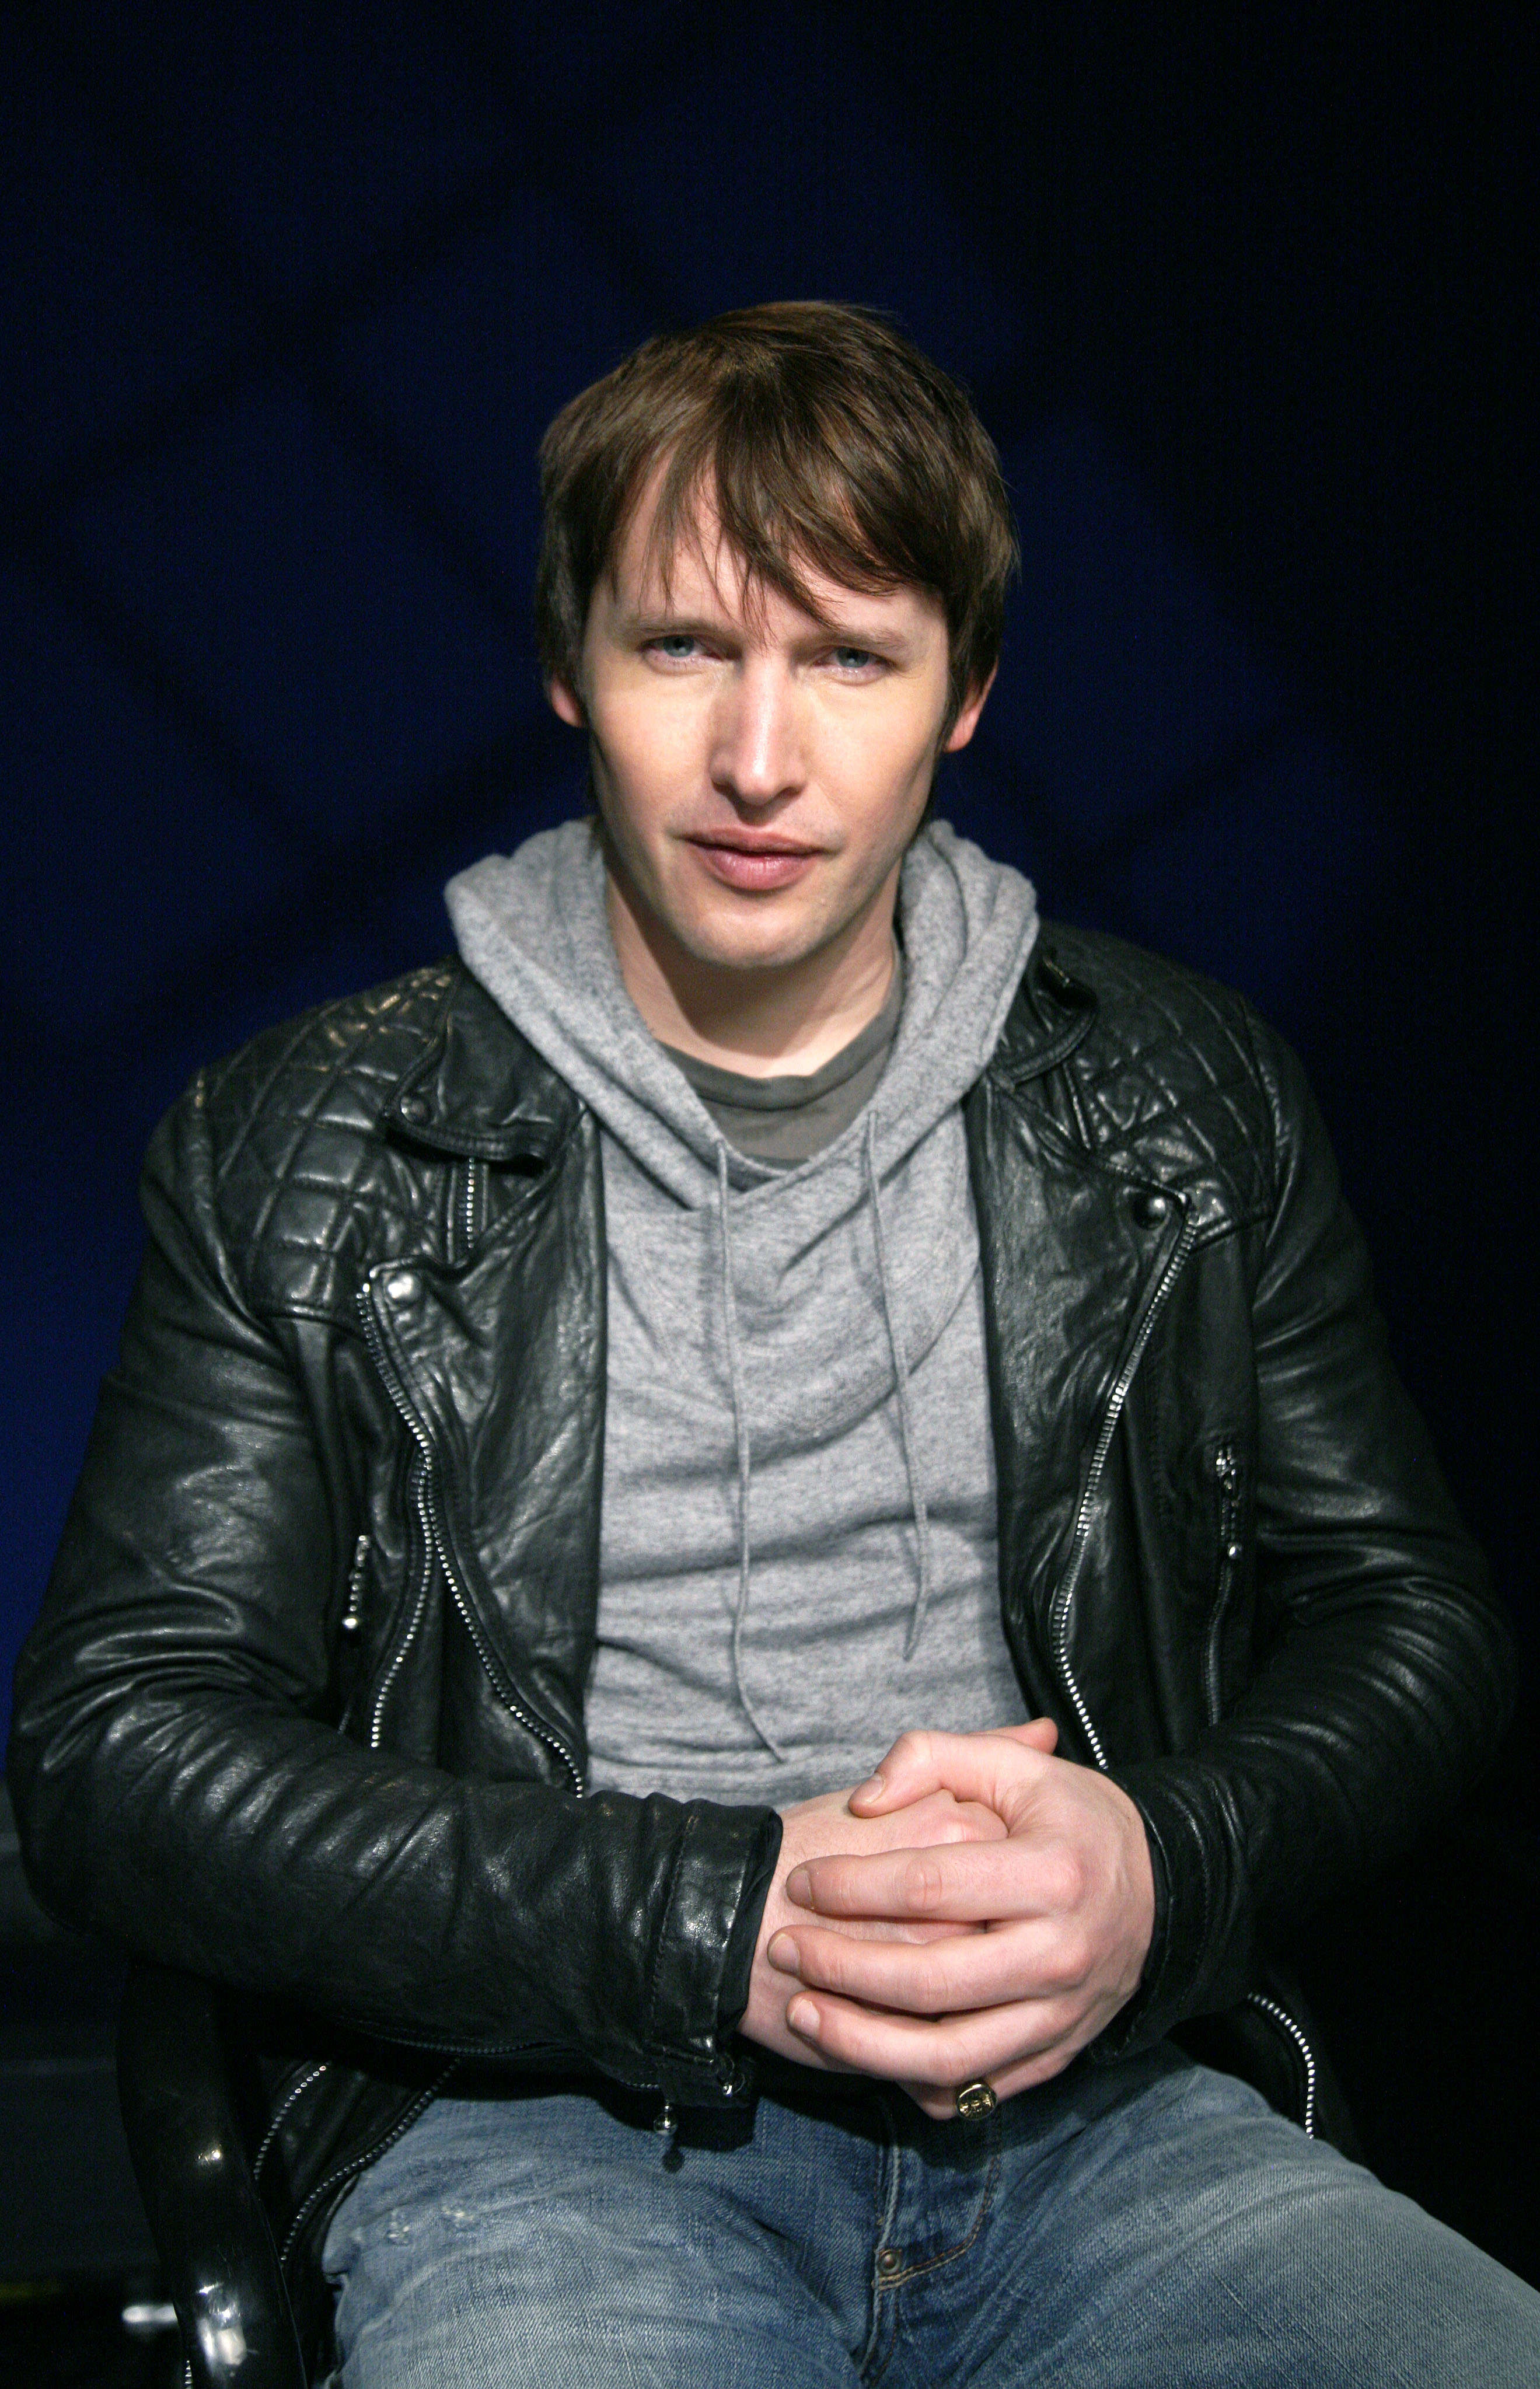 James Blunt And Carl Fogarty Are In Weirdest Celebrity Beef PA 10057464